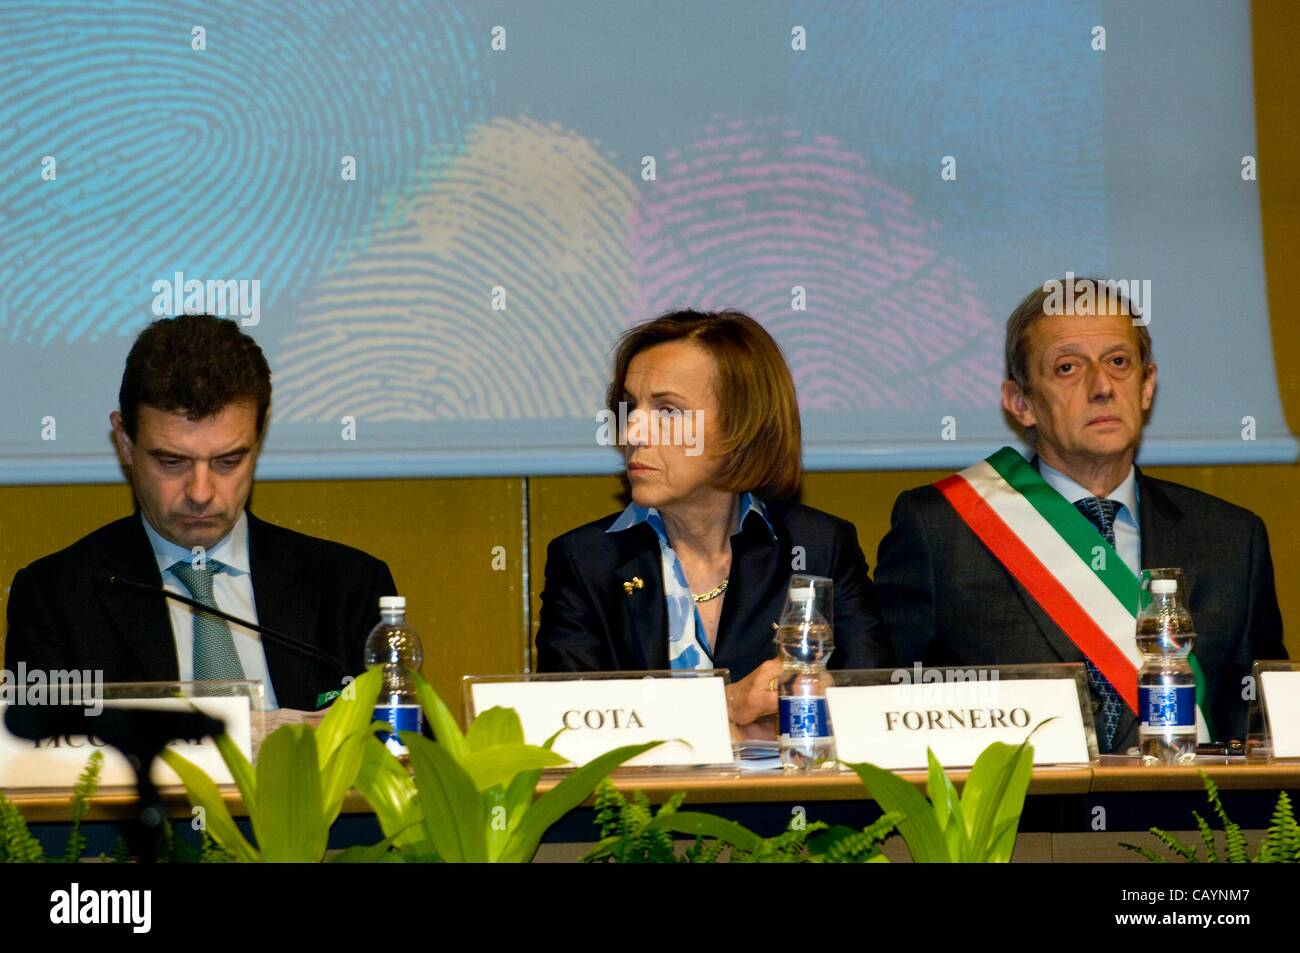 Italy Piedmont Turin 10 Maggio 2012 at 10 hours The President of the Piedmont region Cota (Left) The Minister of - Stock Image